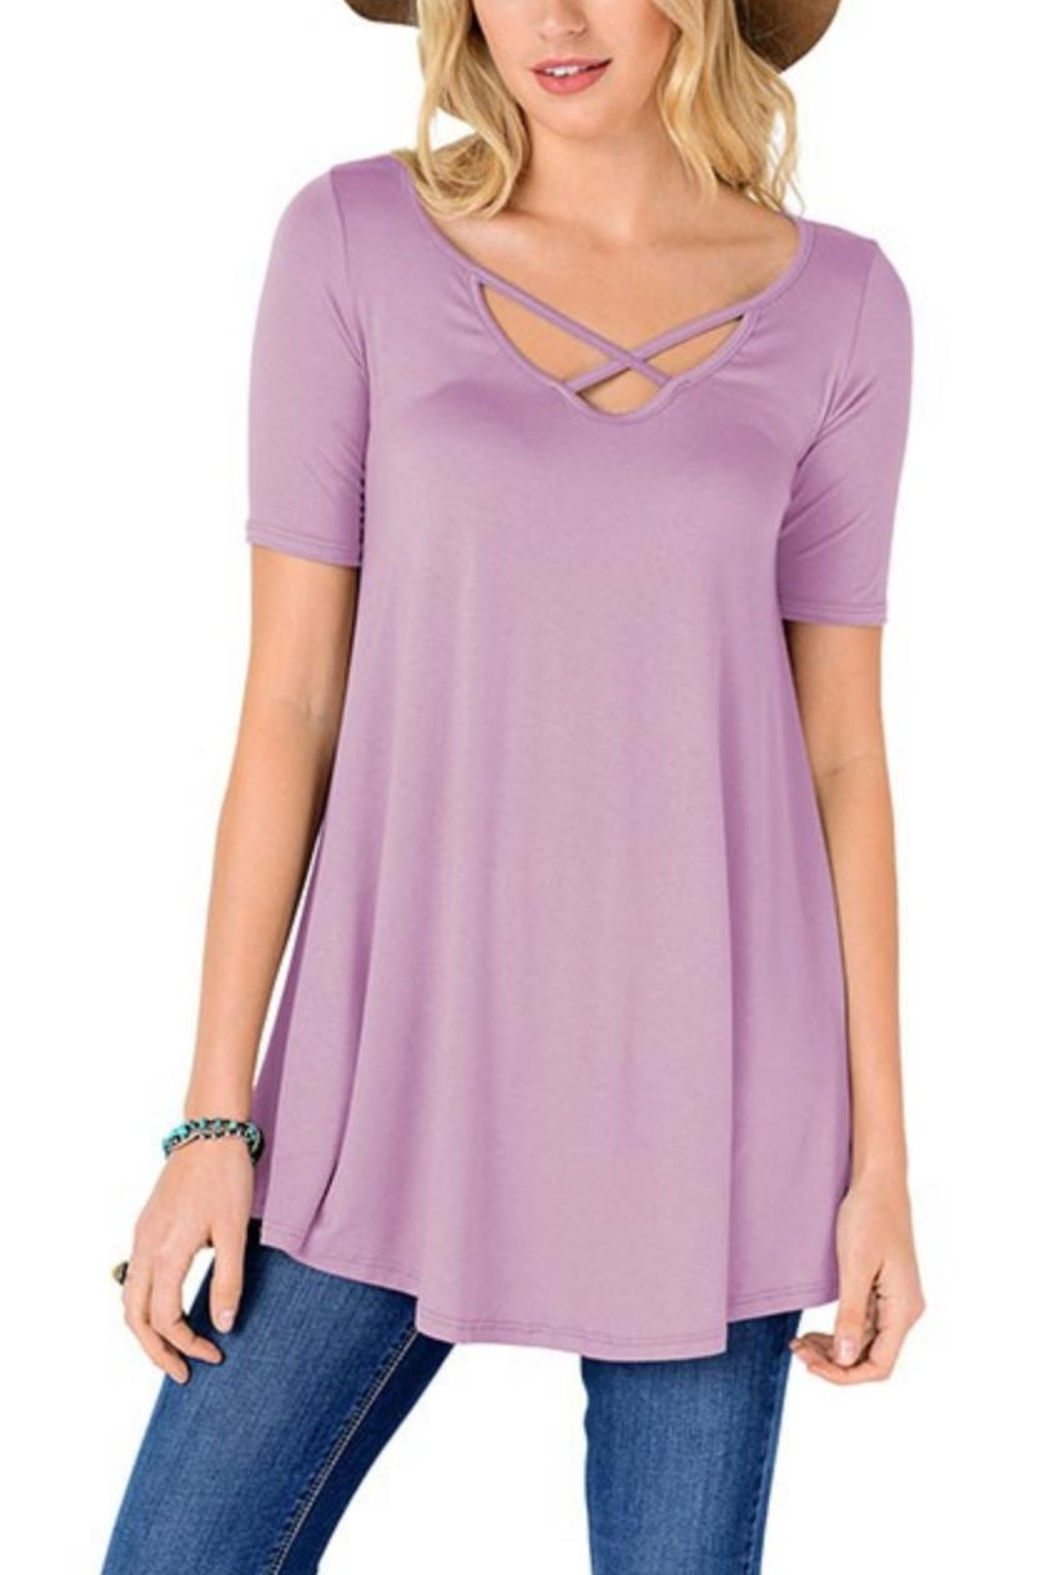 Fashion Corner Criss Cross Scoop Top - Front Cropped Image